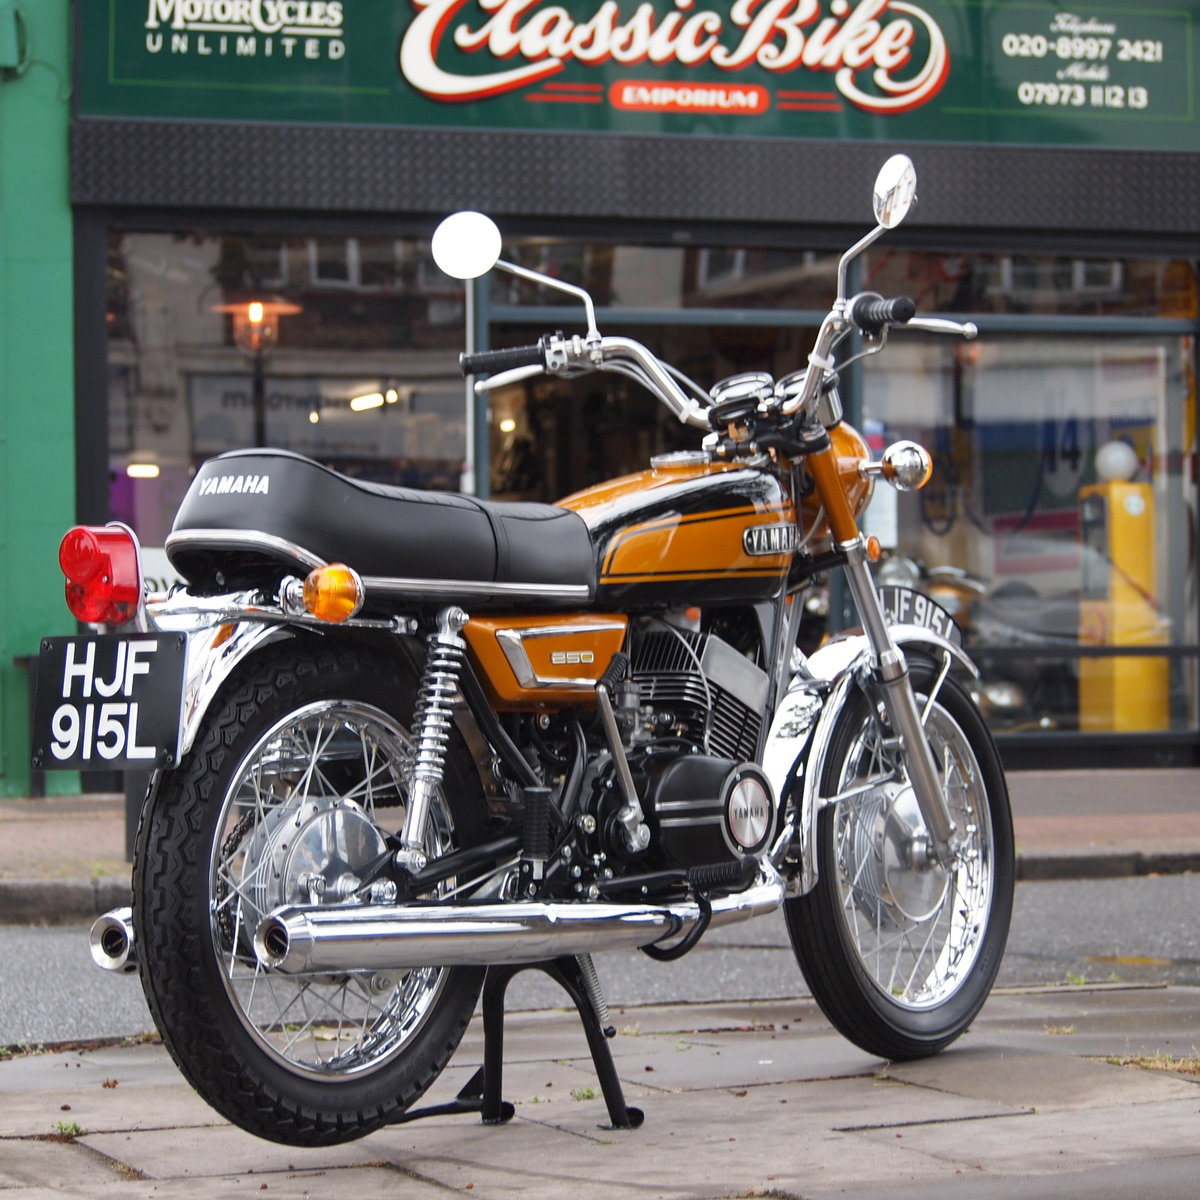 1973 Yamaha YDS7 250 In Concours d'Elegence Condition, BEST. SOLD (picture 1 of 6)